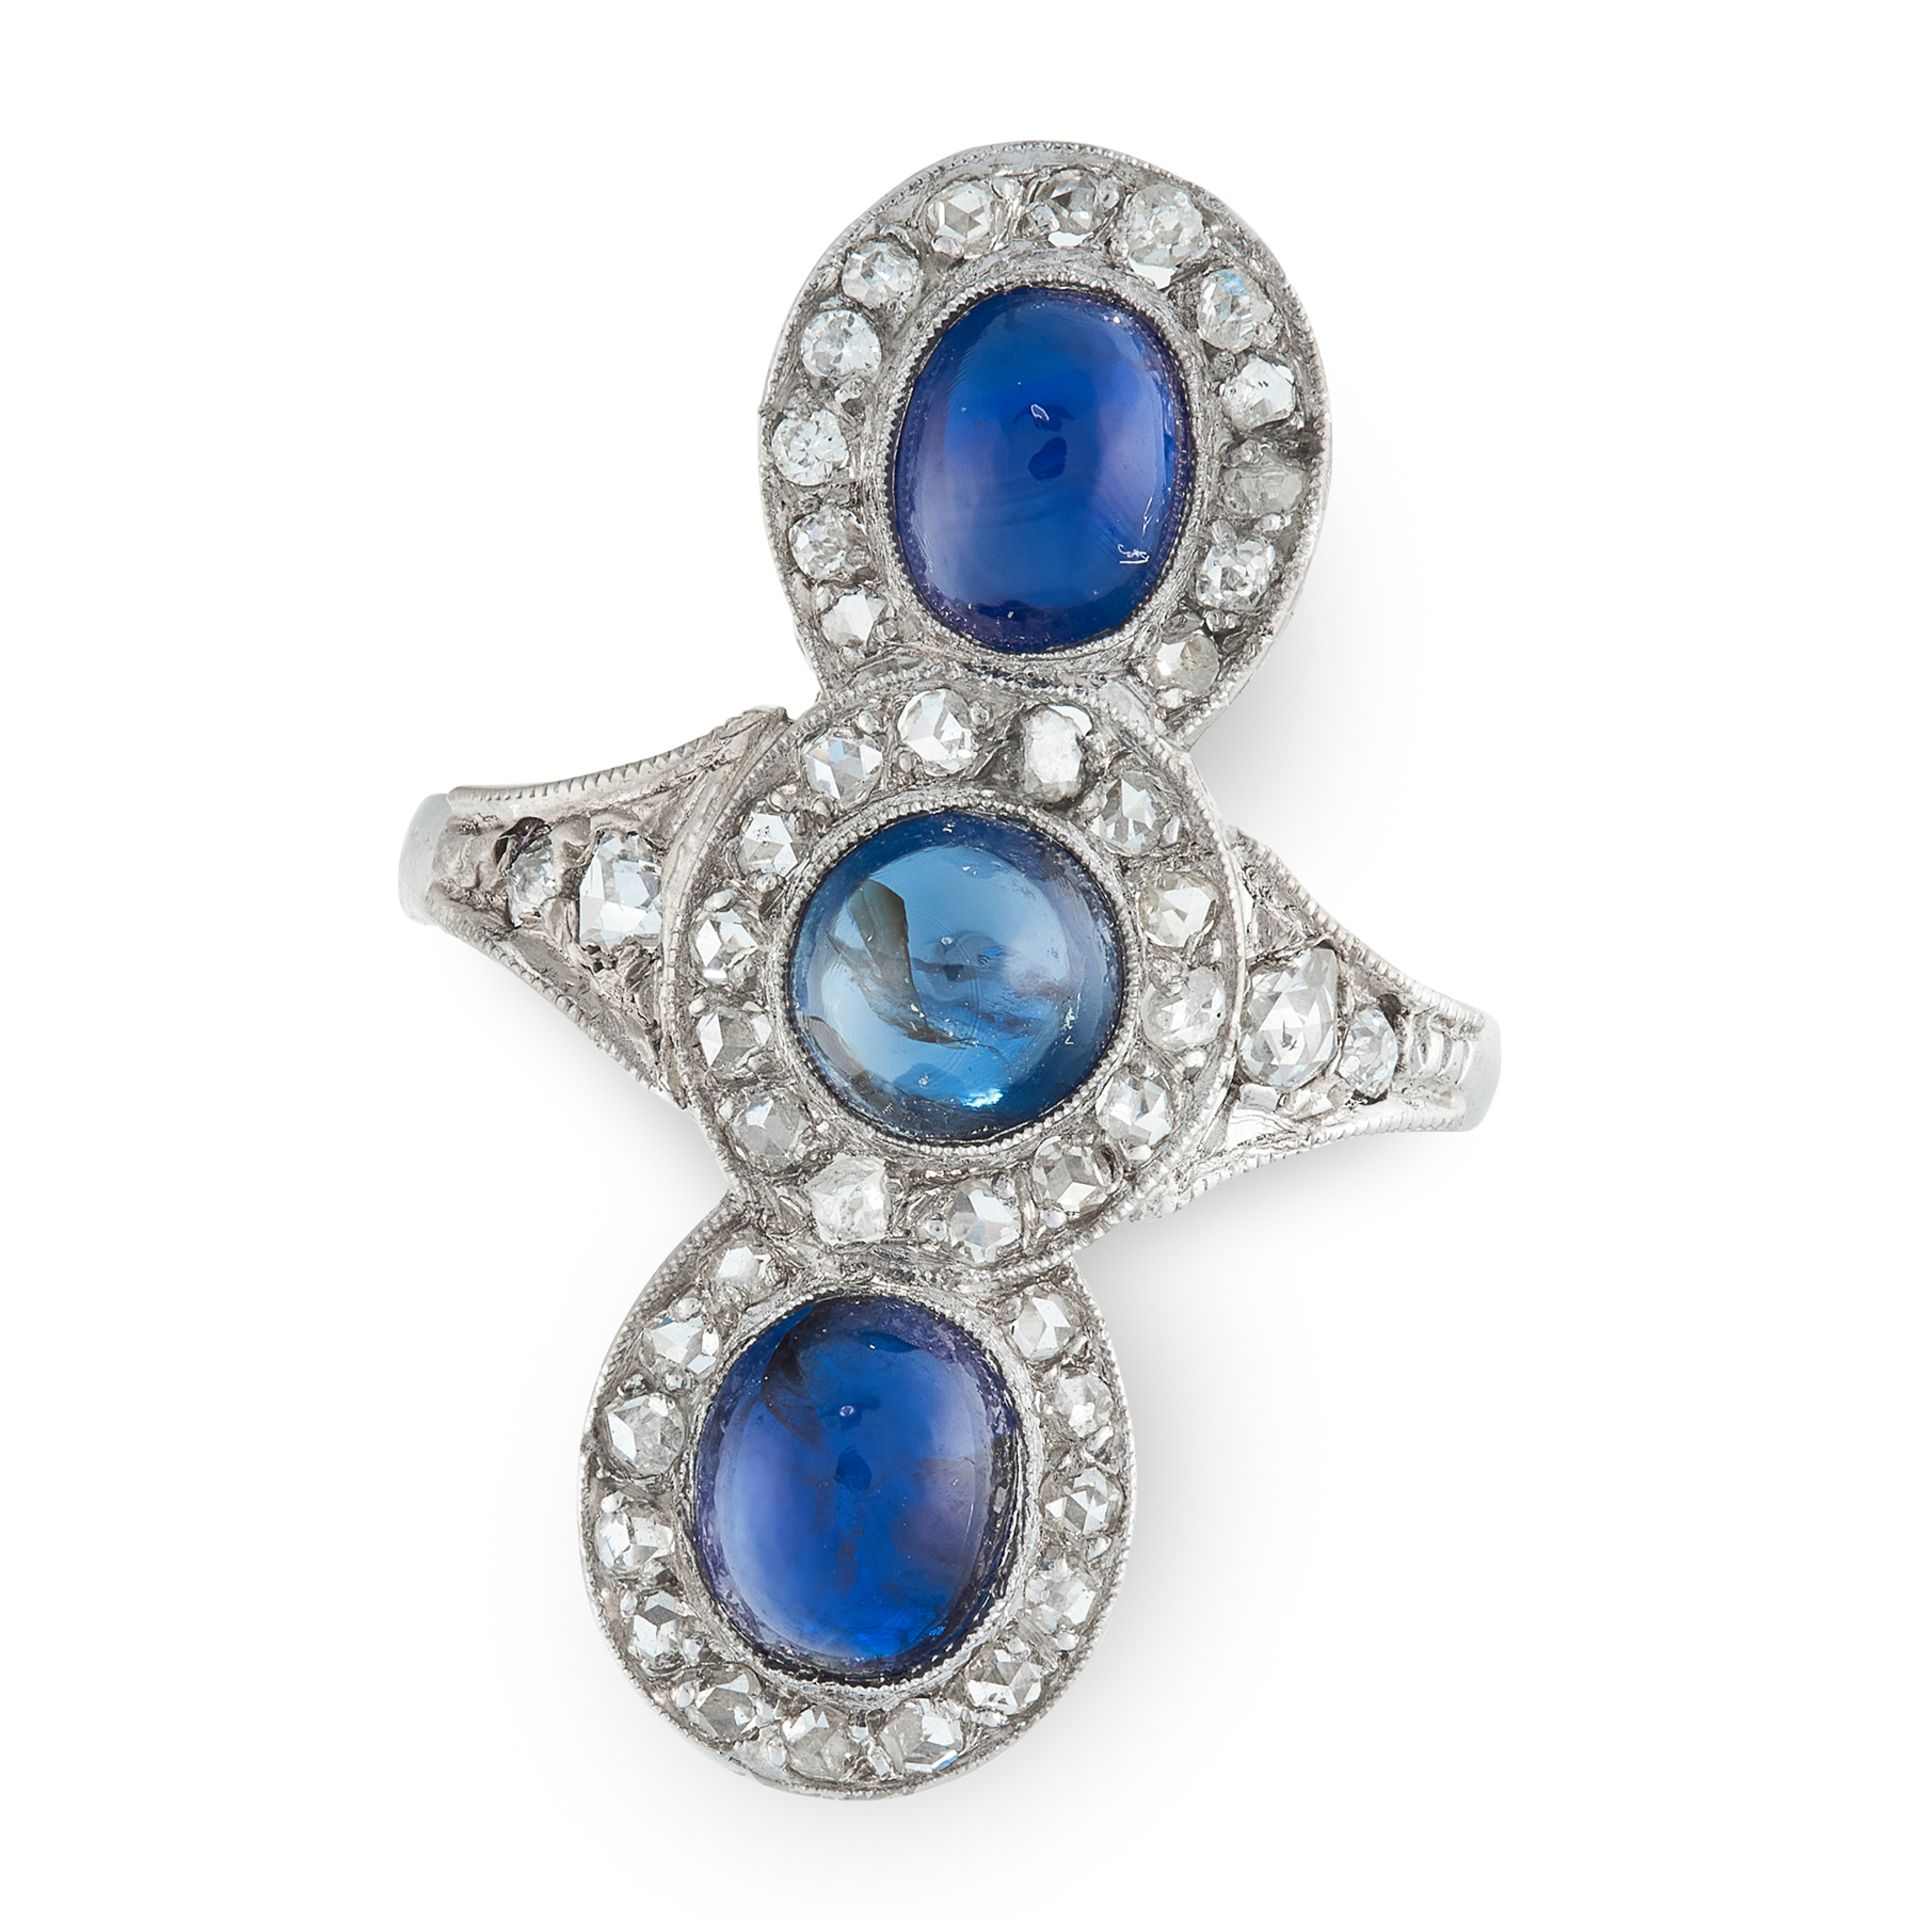 A SAPPHIRE AND DIAMOND DRESS RING in 18ct white gold and platinum, set with three cabochon sapphires